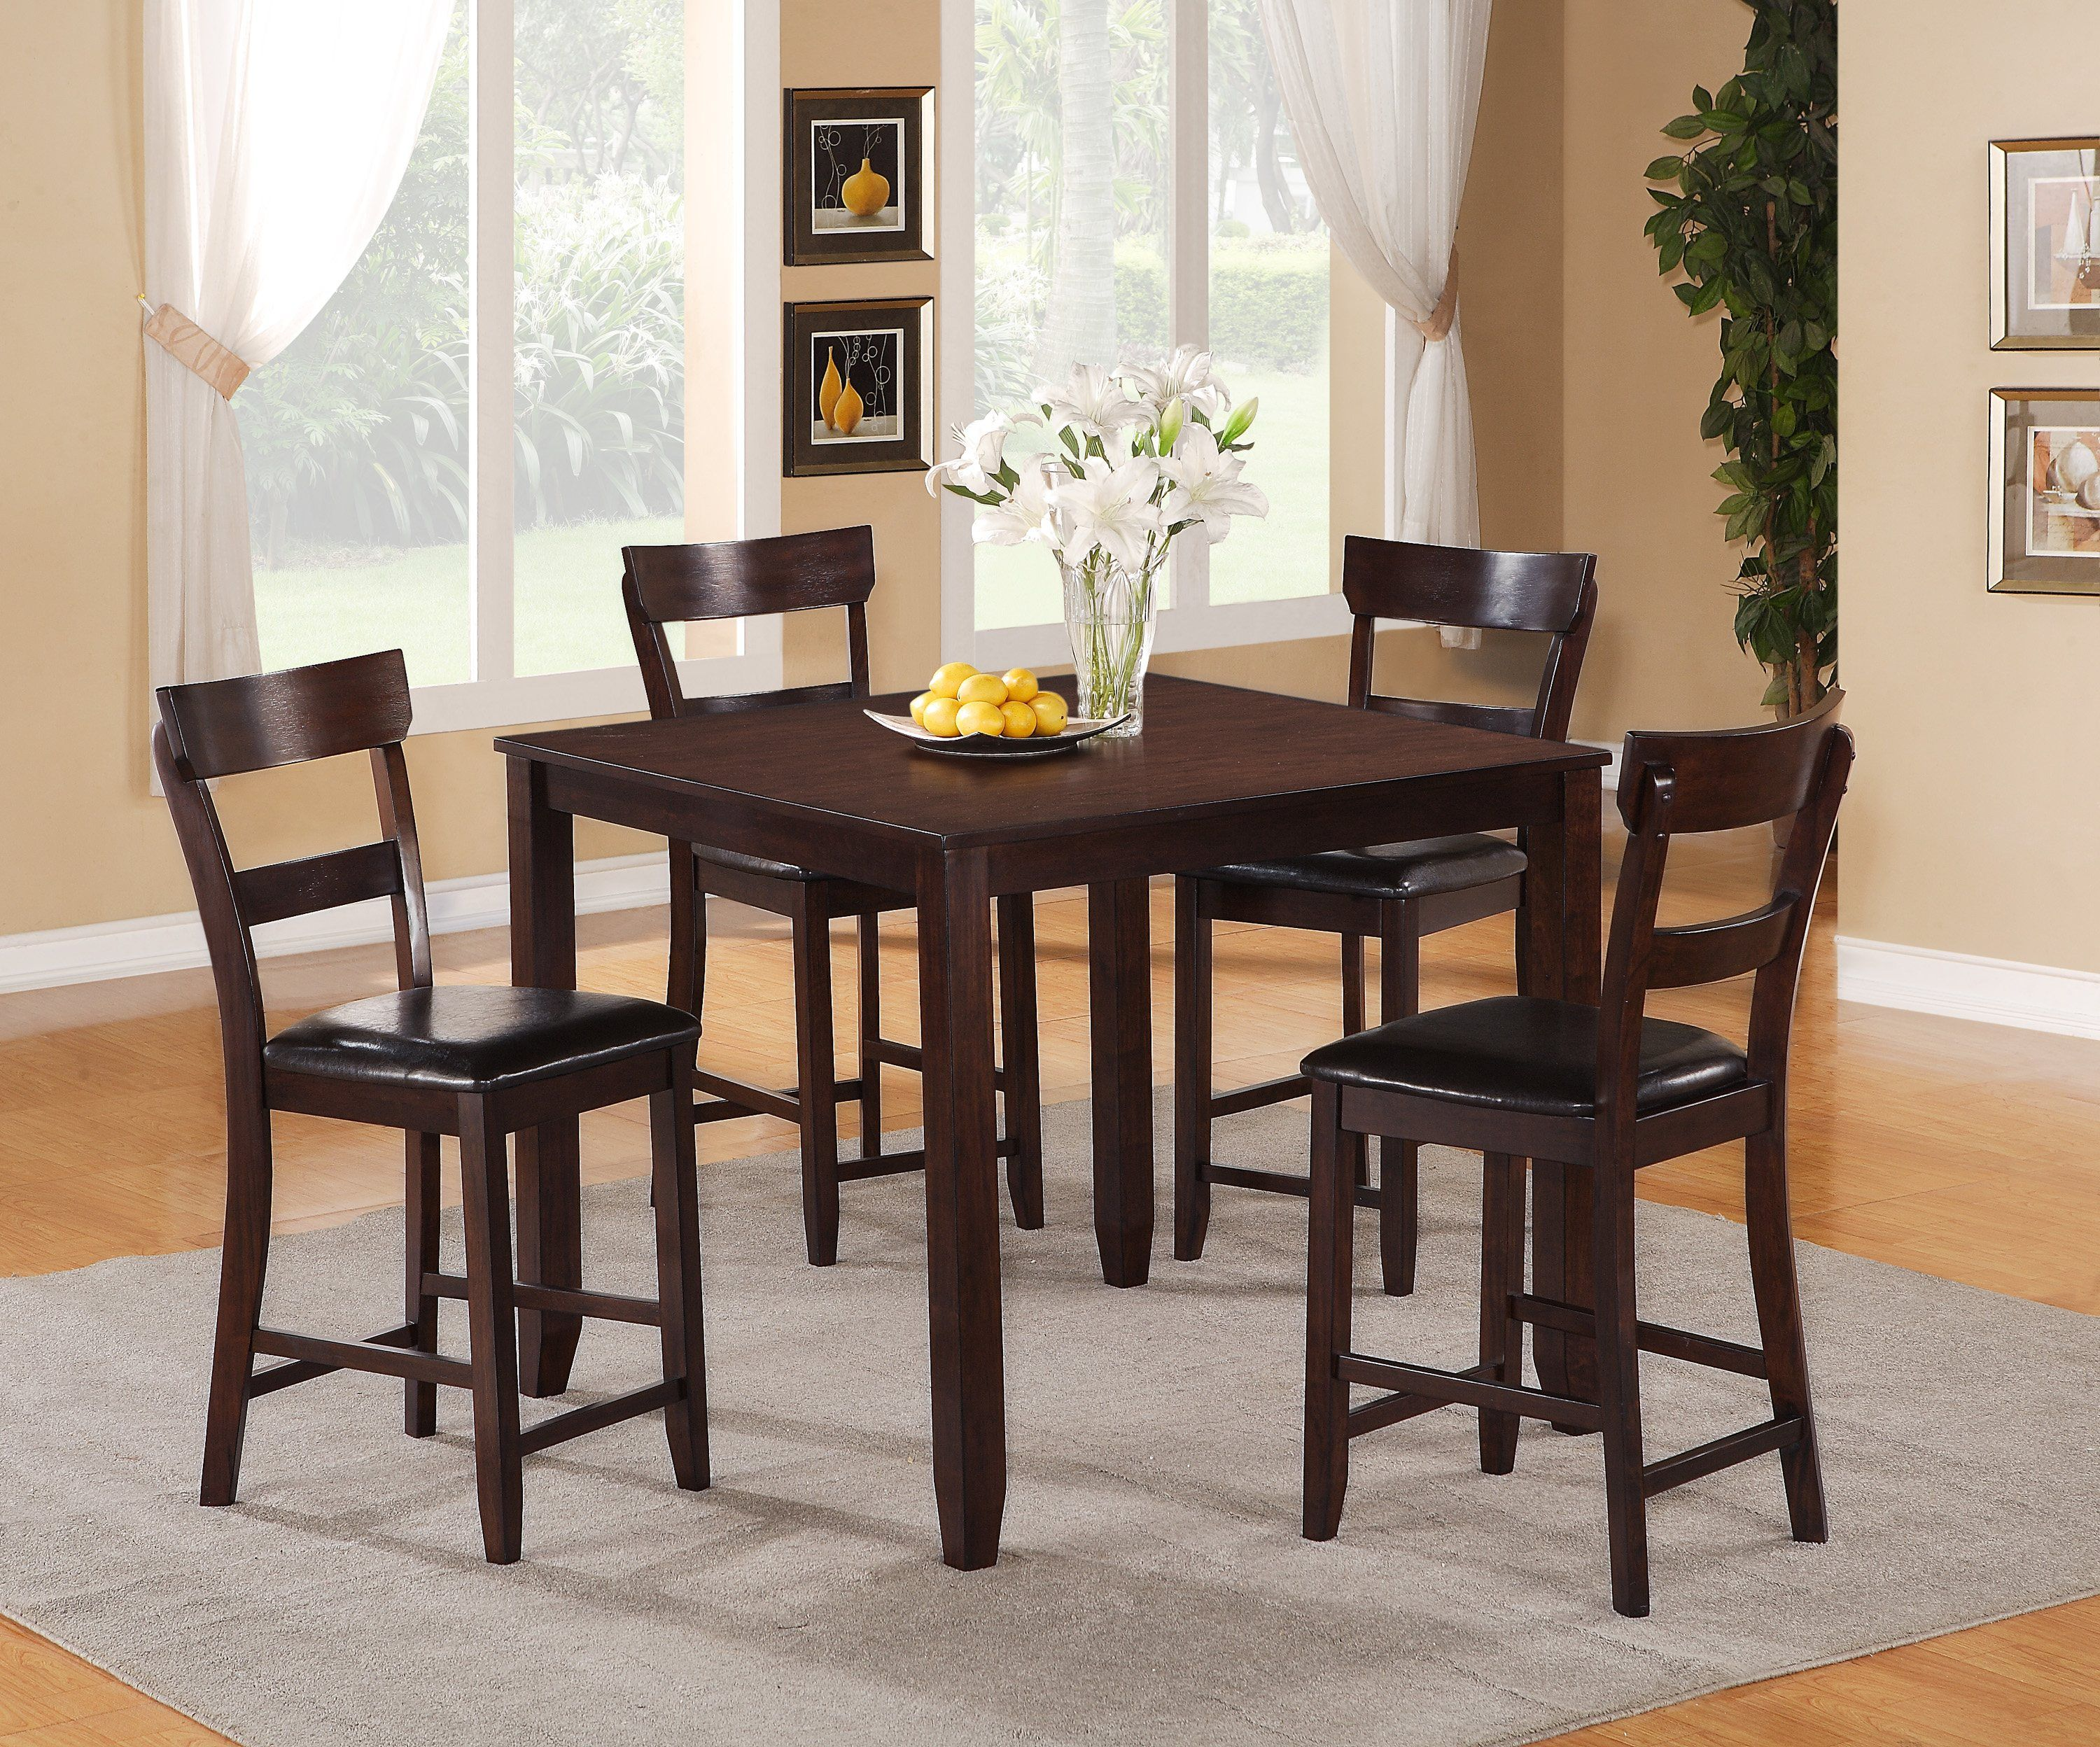 Darvin Clearance Outlet Tables Tables Counter Height Dining